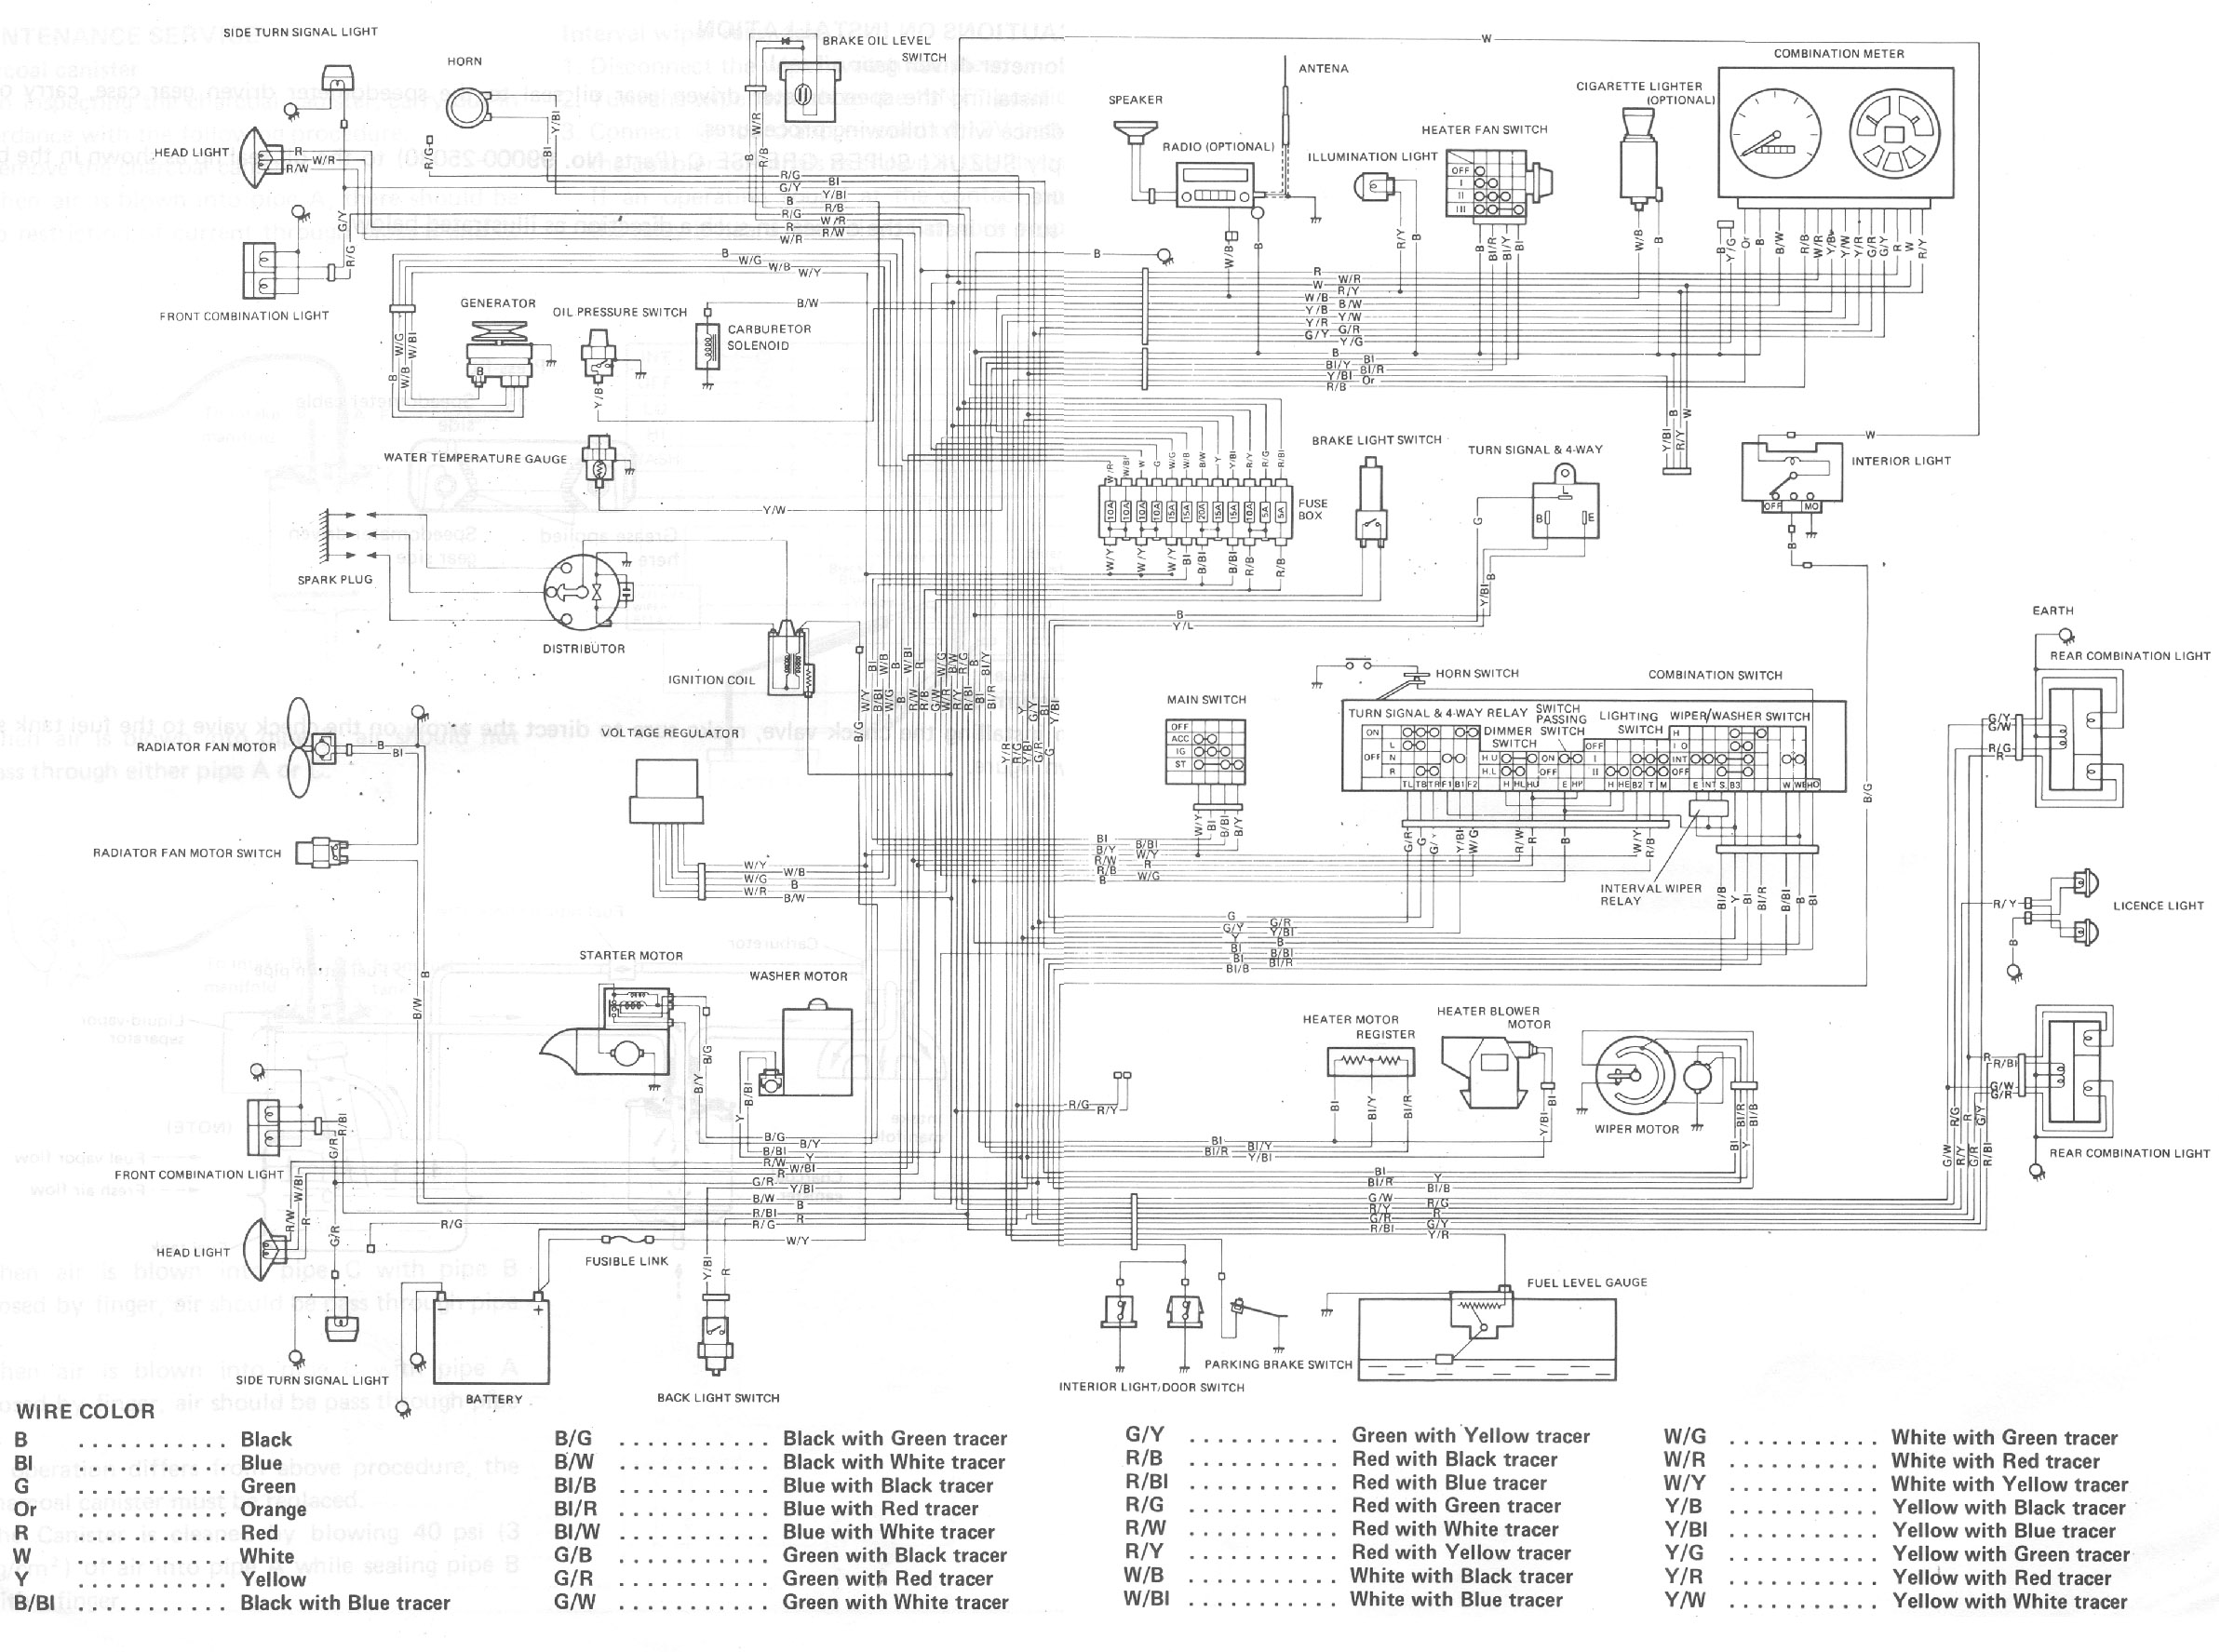 Electric_diagram 2013 rzr 800 wiring diagram wiring diagram simonand bobcat wiring diagram free at honlapkeszites.co